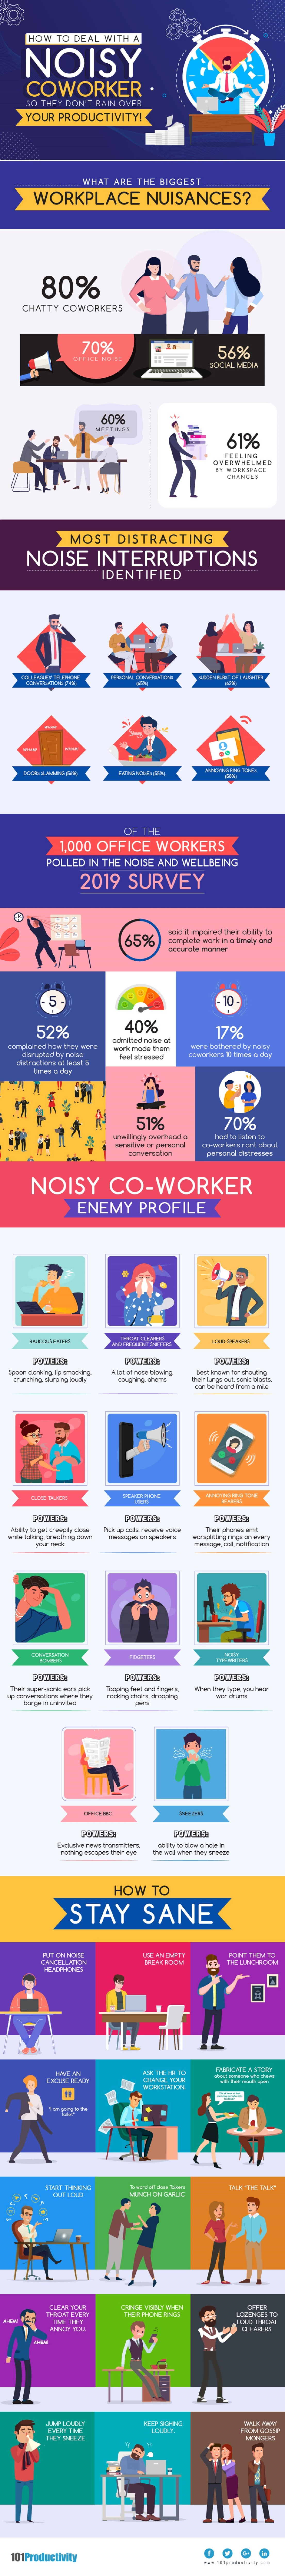 how-to-deal-with-a-noisy-coworker-so-they-dont-rain-over-your-productivity-infographic